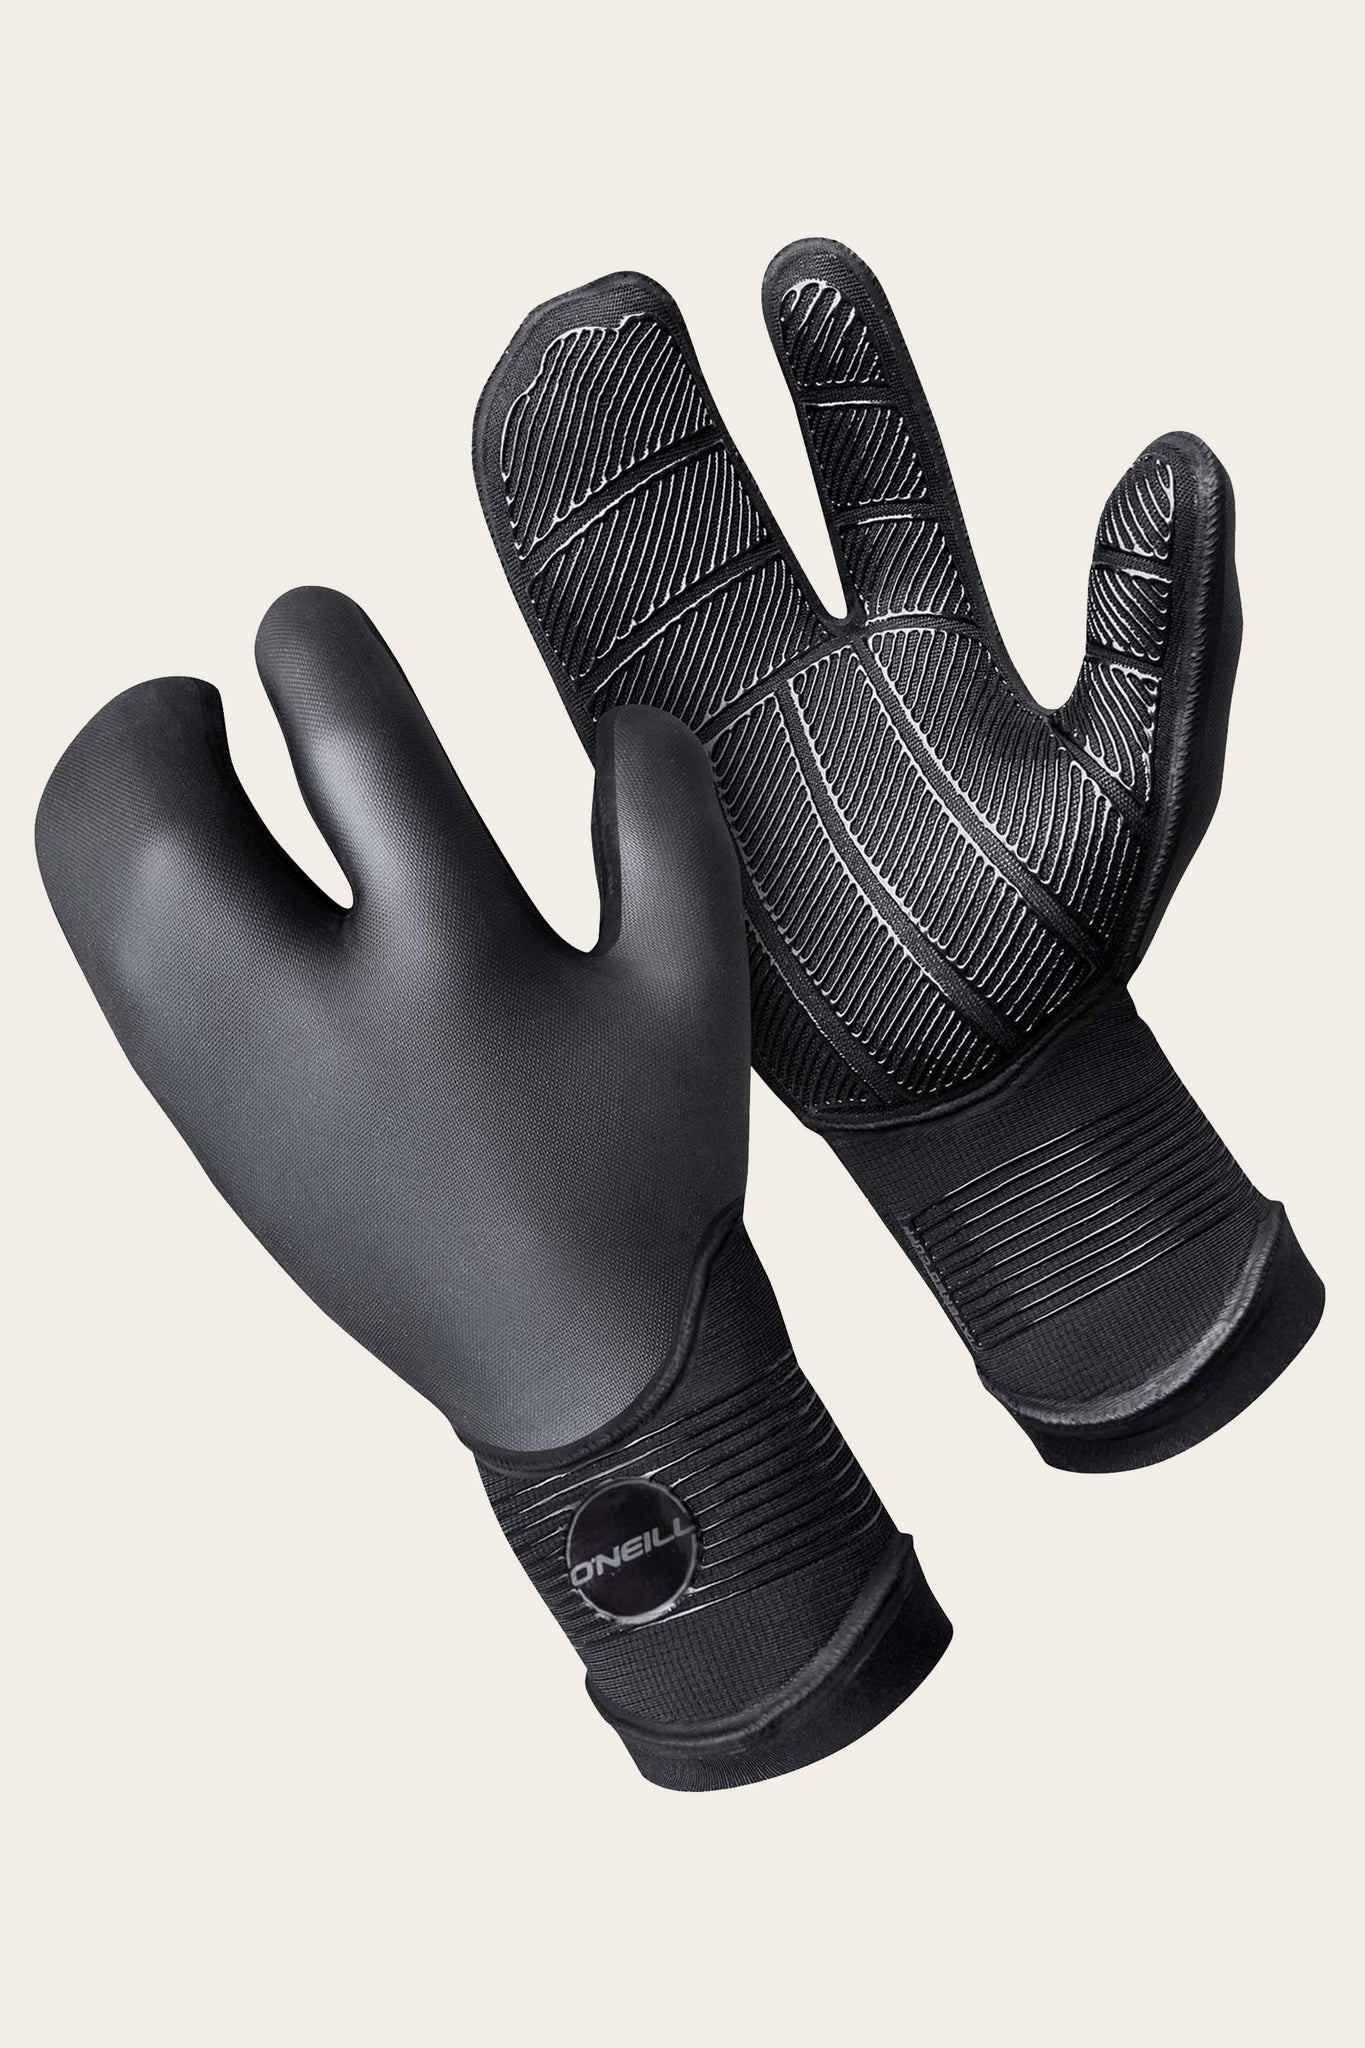 Psycho Tech 5Mm Lobster Glove - Black | O'Neill